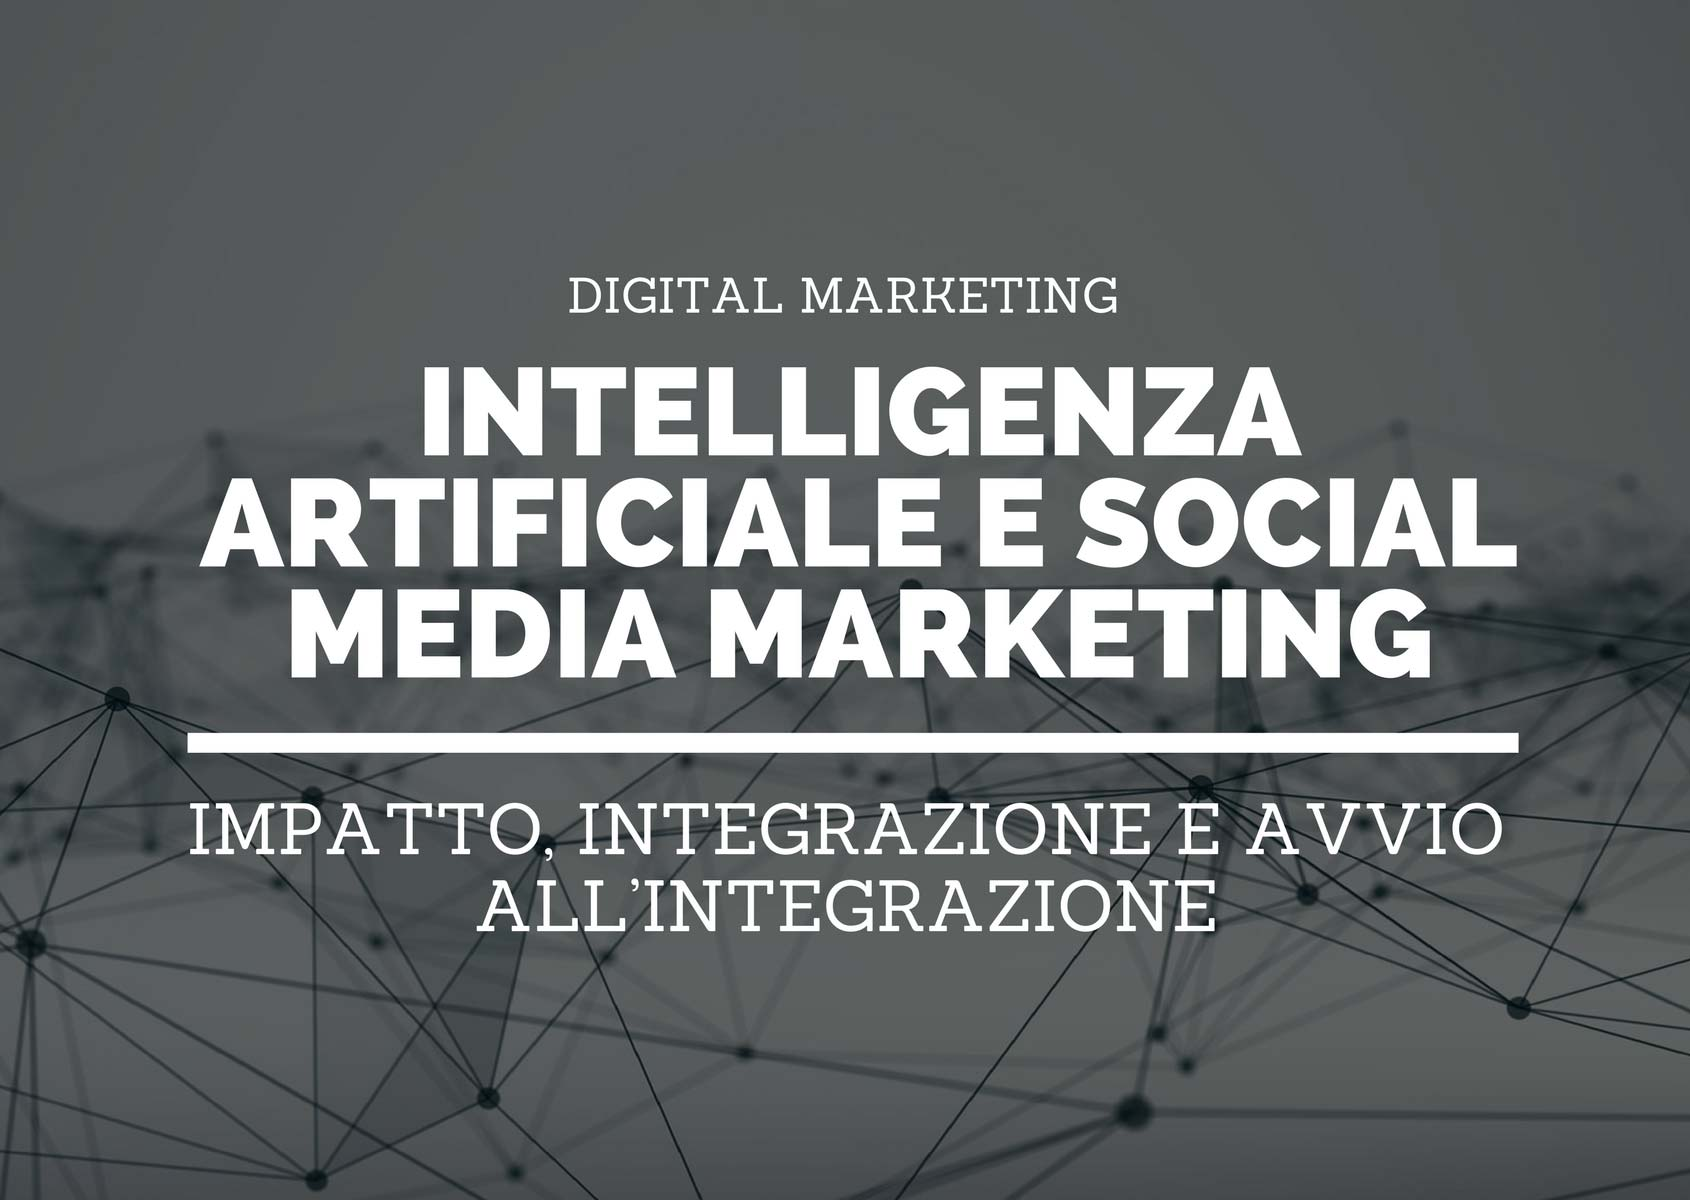 L'impatto dell'intelligenza artificiale sul social media marketing